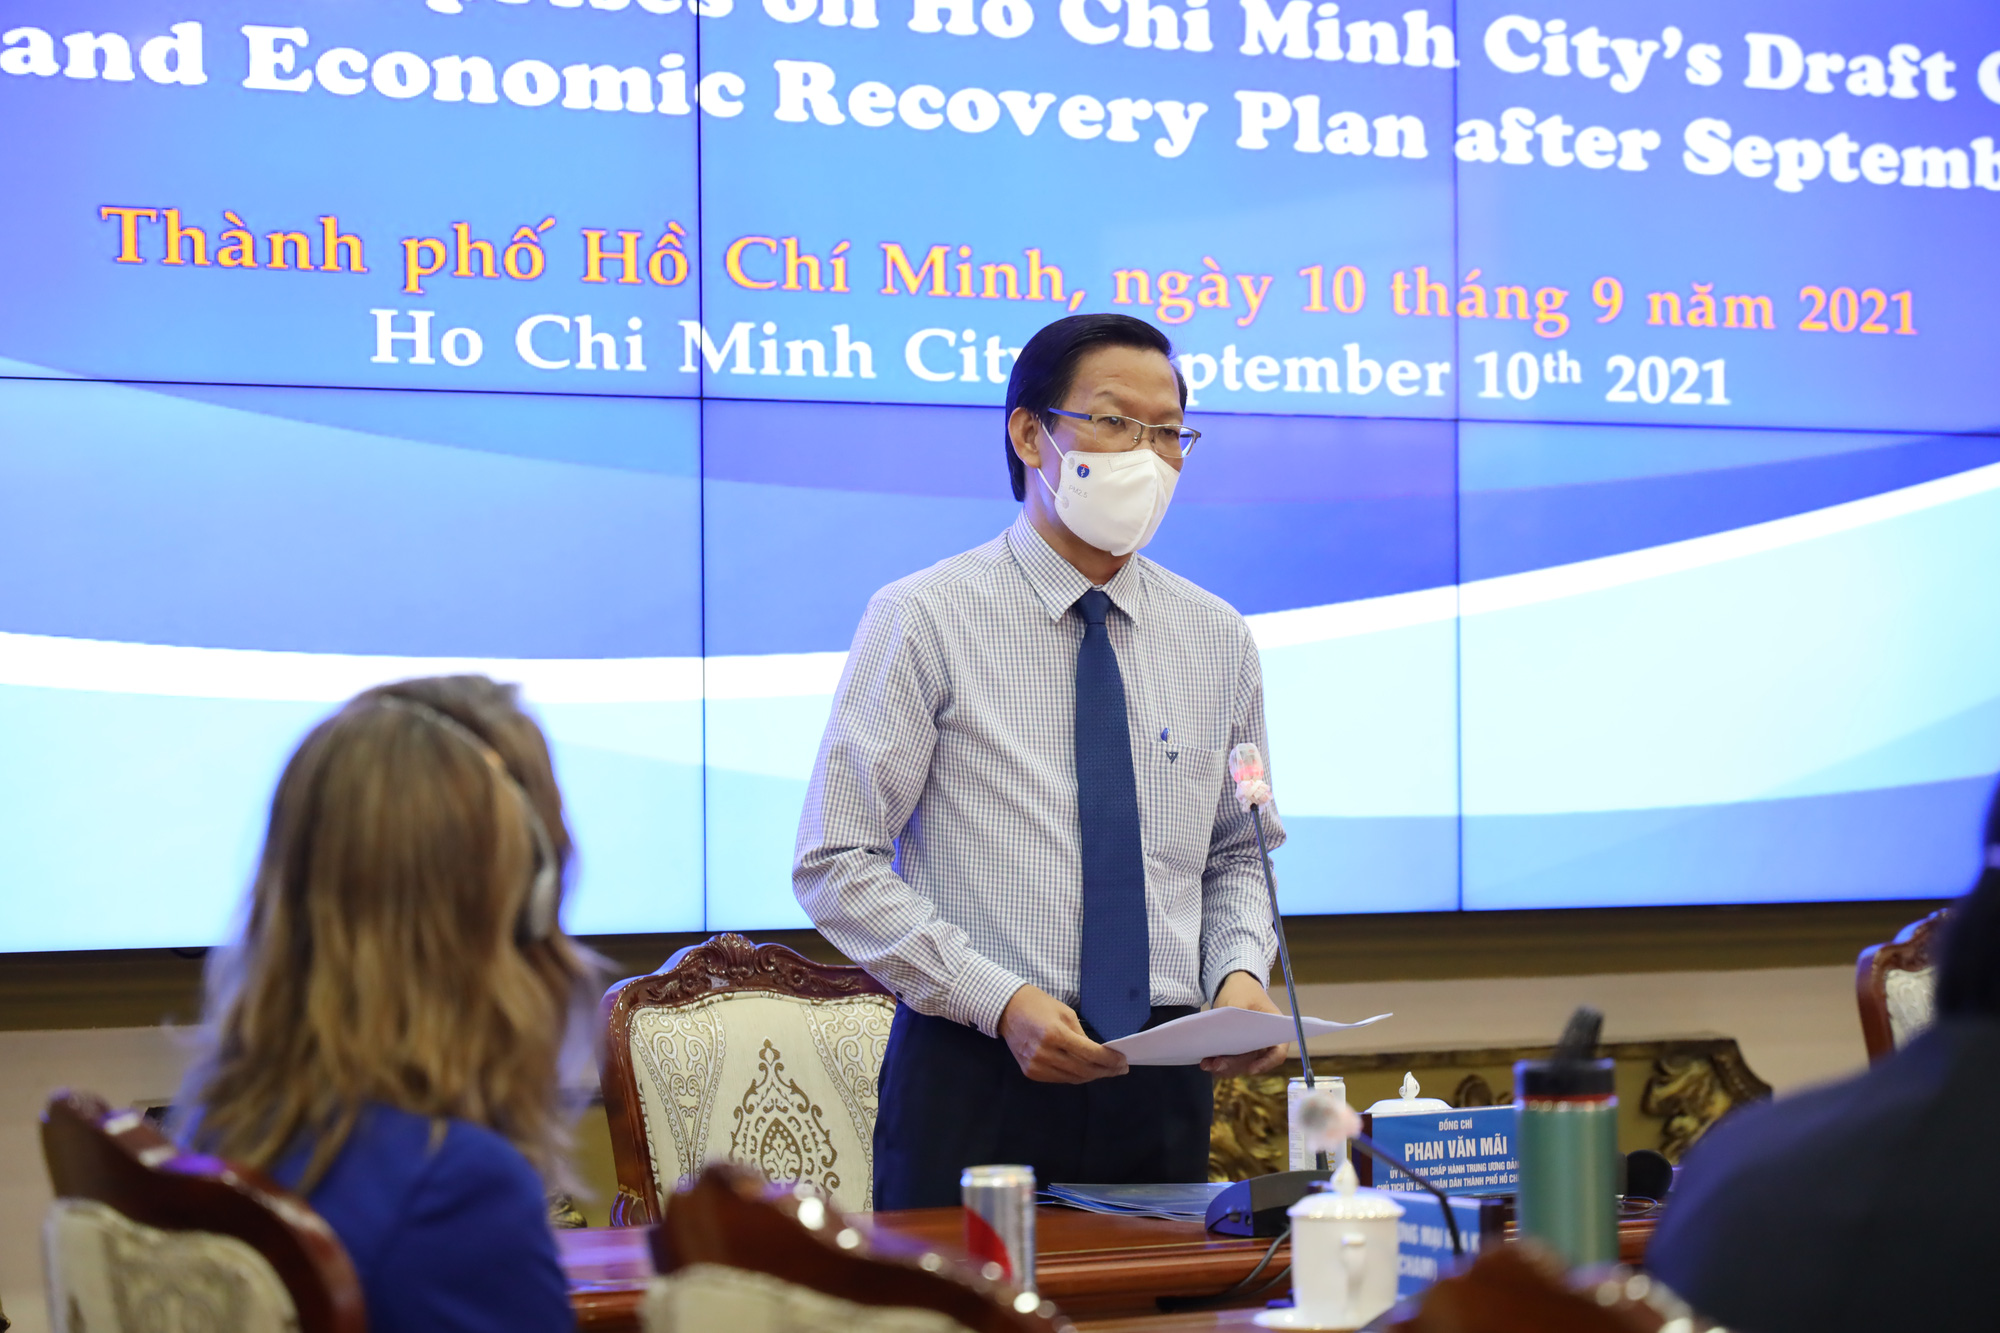 Ho Chi Minh City chairman Phan Van Mai speaks at a conference on consulting enterprises on the city's draft COVID-19 management and economic recovery plan after September 15 in this picture taken on September 10, 2021. Photo: Ho Chi Minh City Press Center